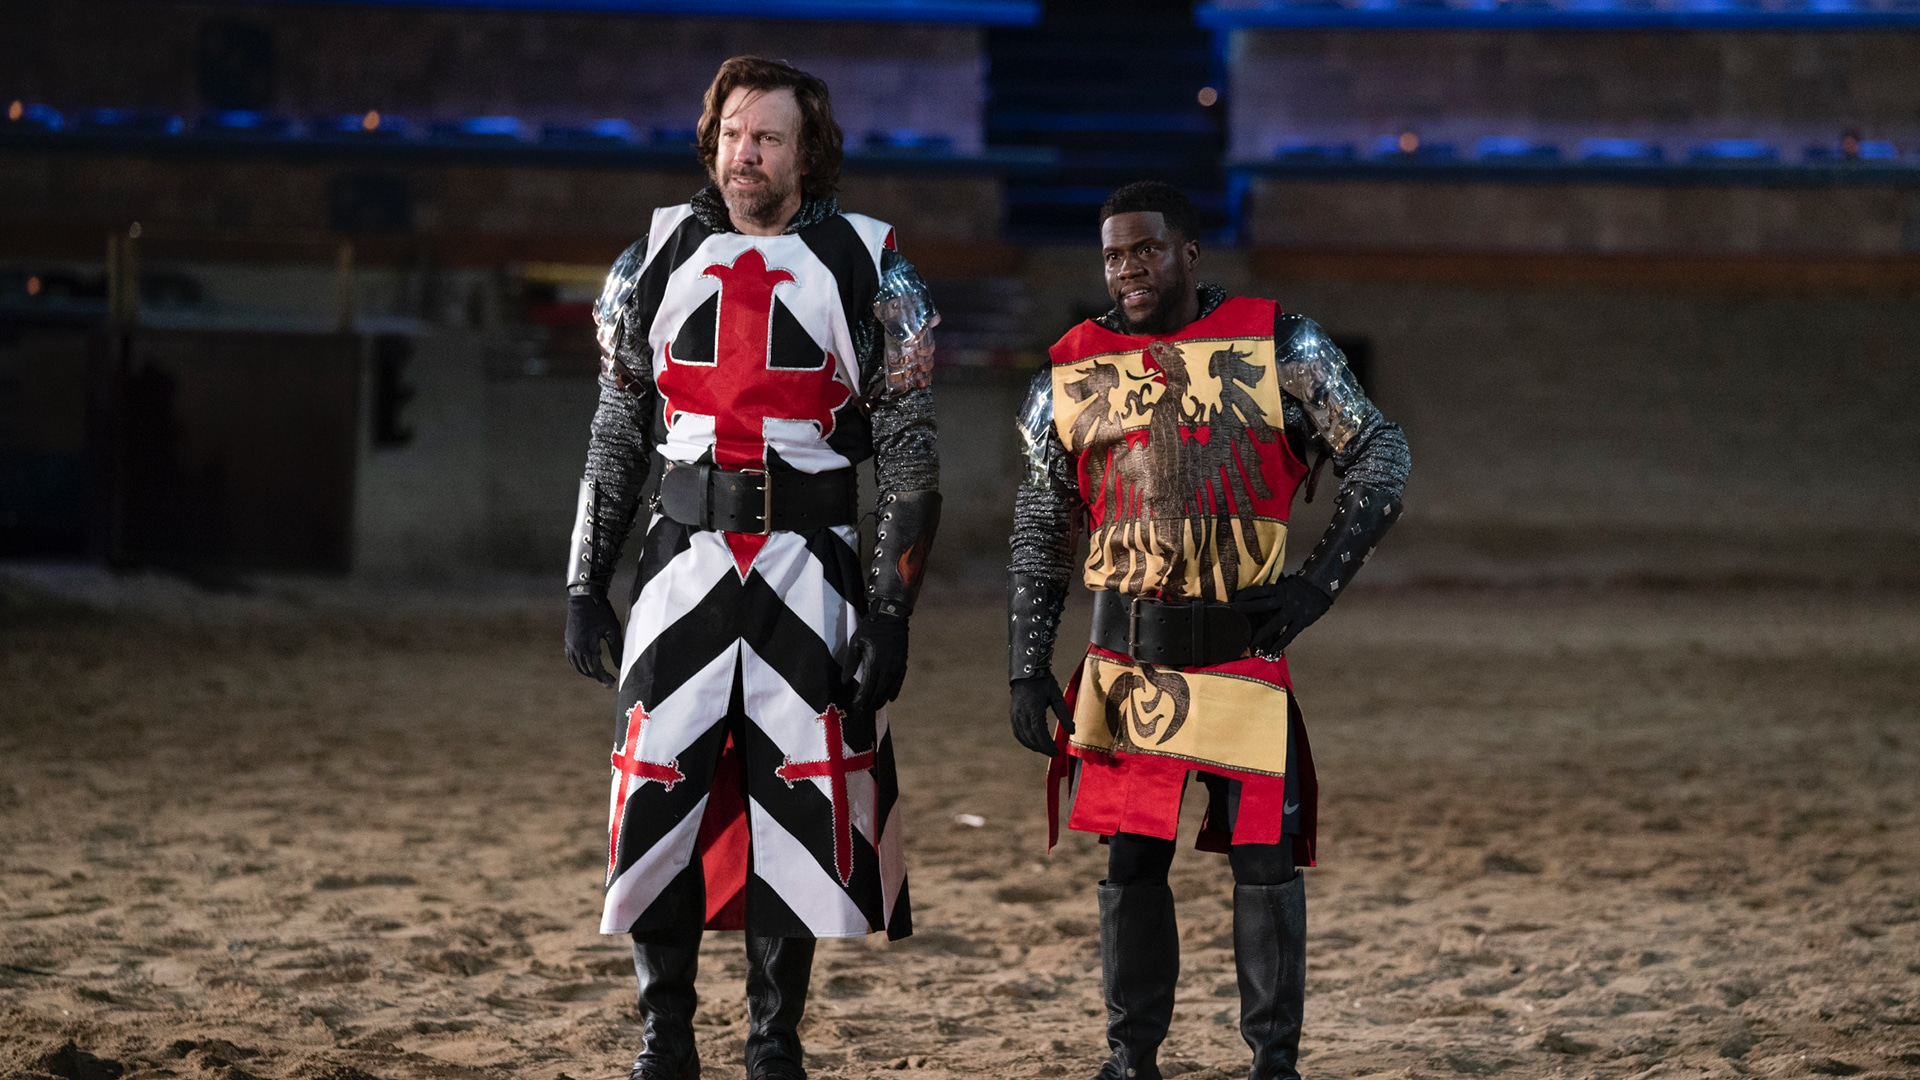 Jousting with Jason Sudeikis and Kevin Hart